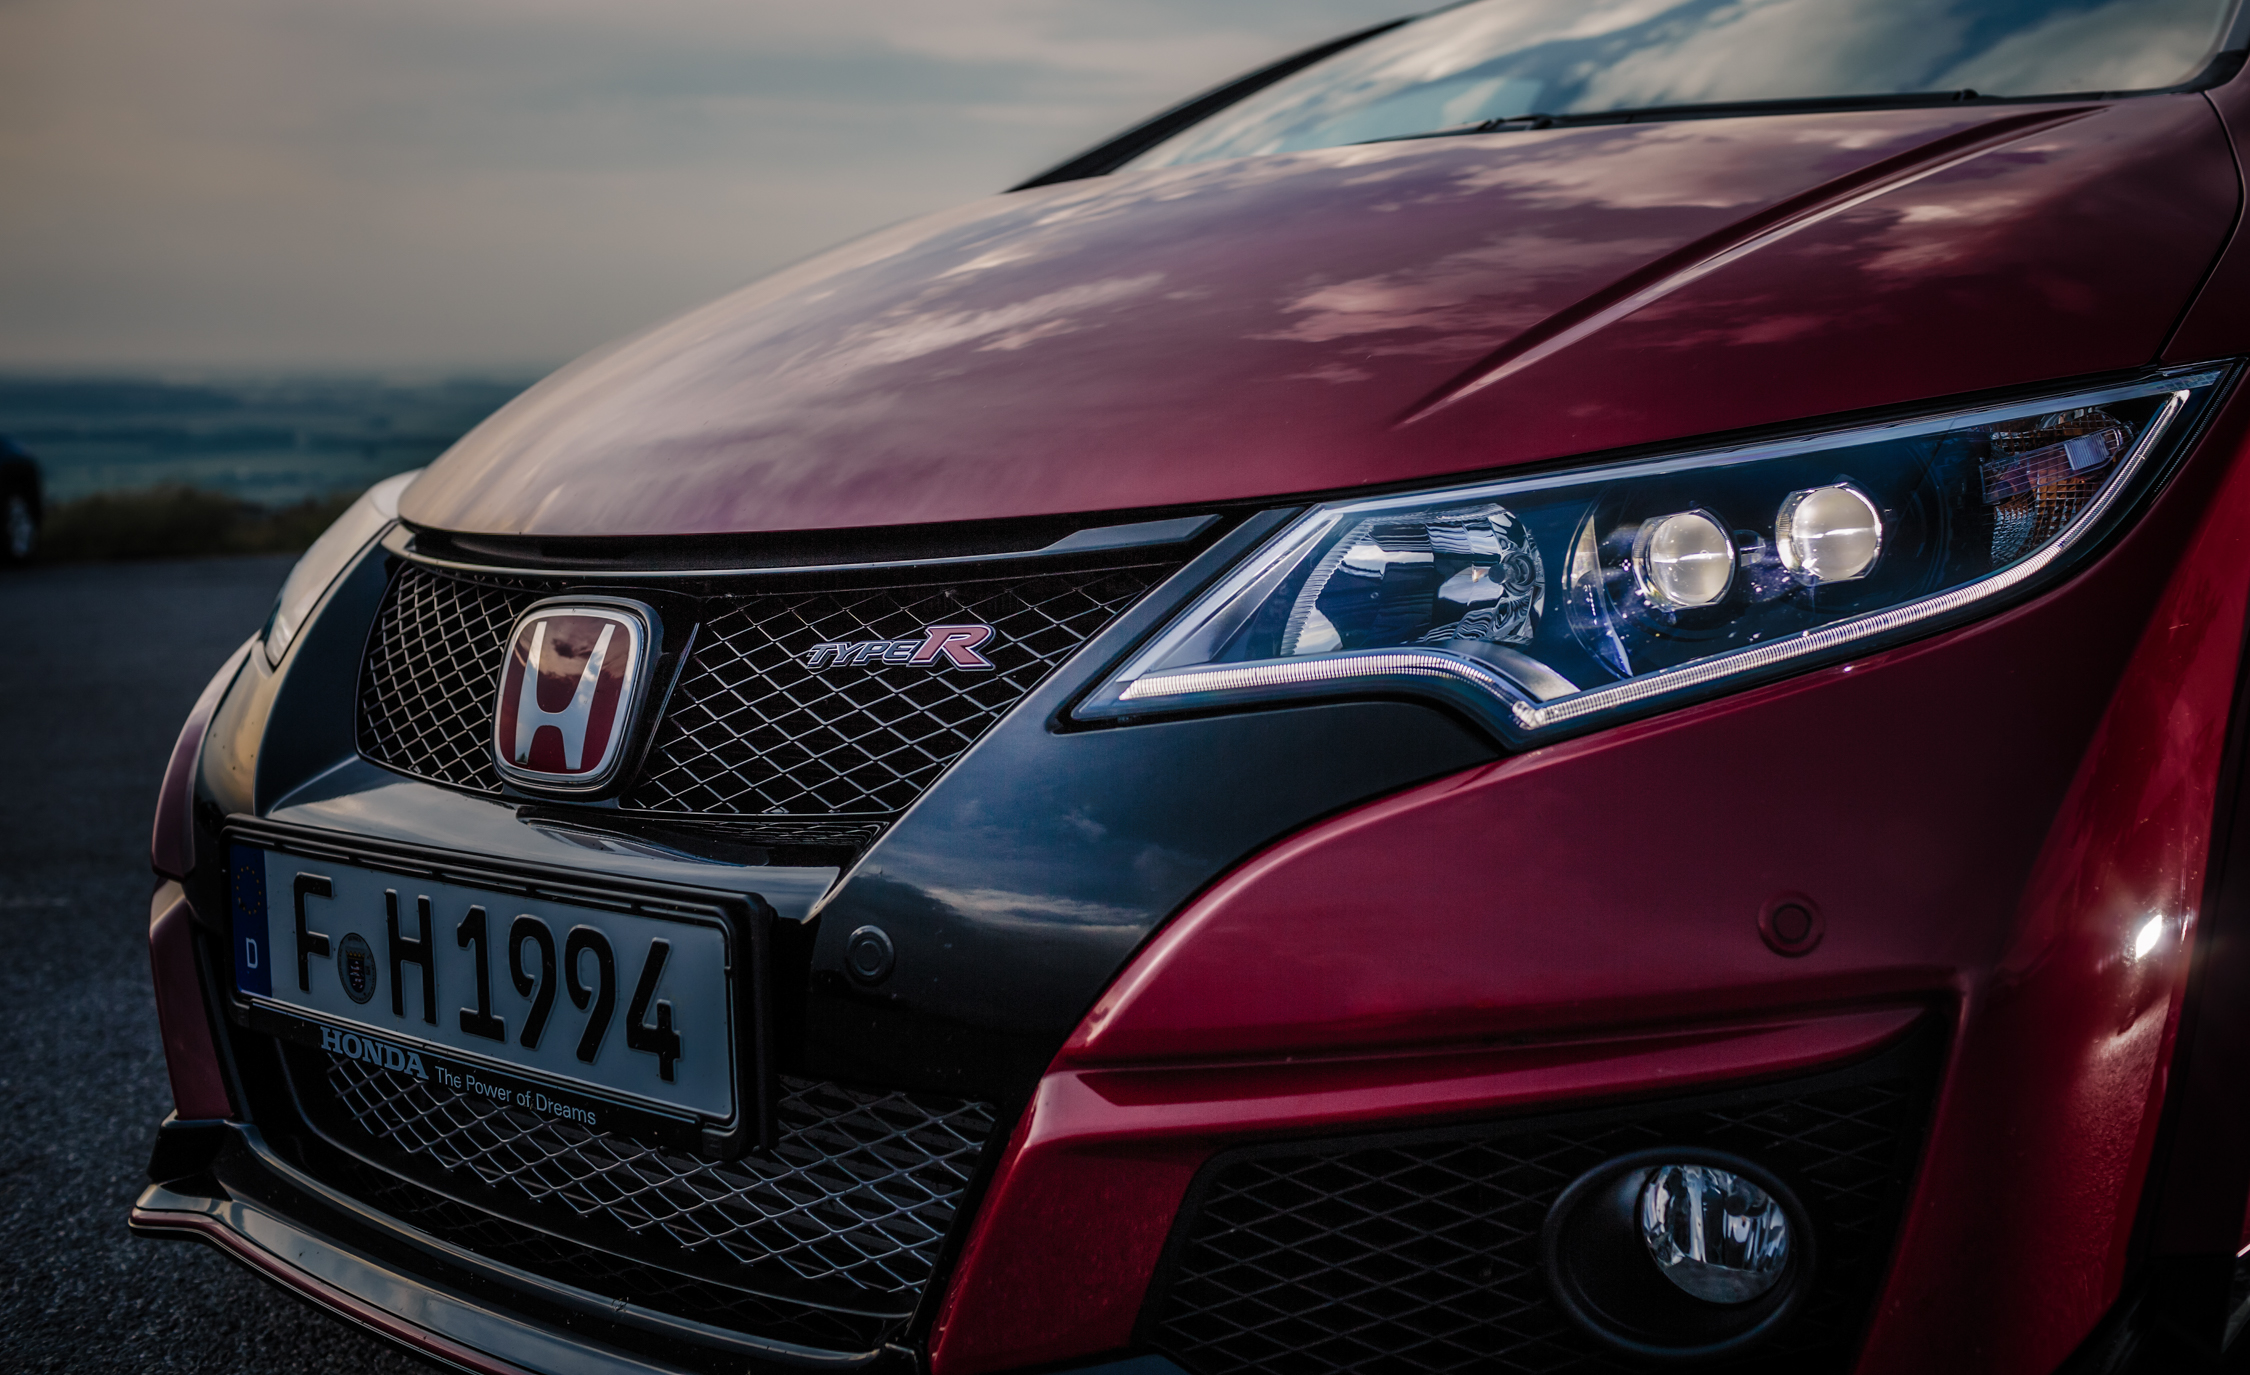 2015 Honda Civic Type R Exterior Grille and Badge